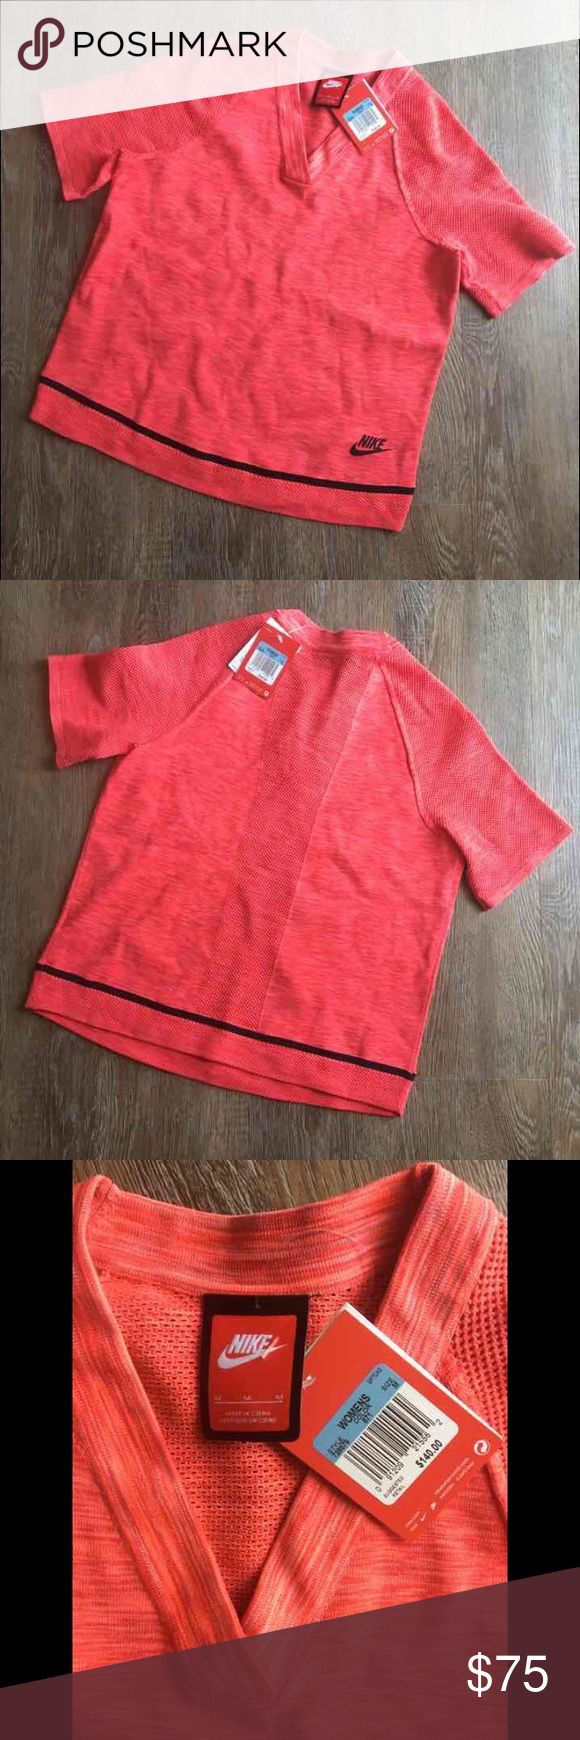 Nike tech knit top Size- Medium  Condition- New with tags Color- Red/pink   Full knit material   Stretchy   Comfortable fit   Super light weight  Retail $140  Thanks for looking! Nike Tops Tees - Short Sleeve